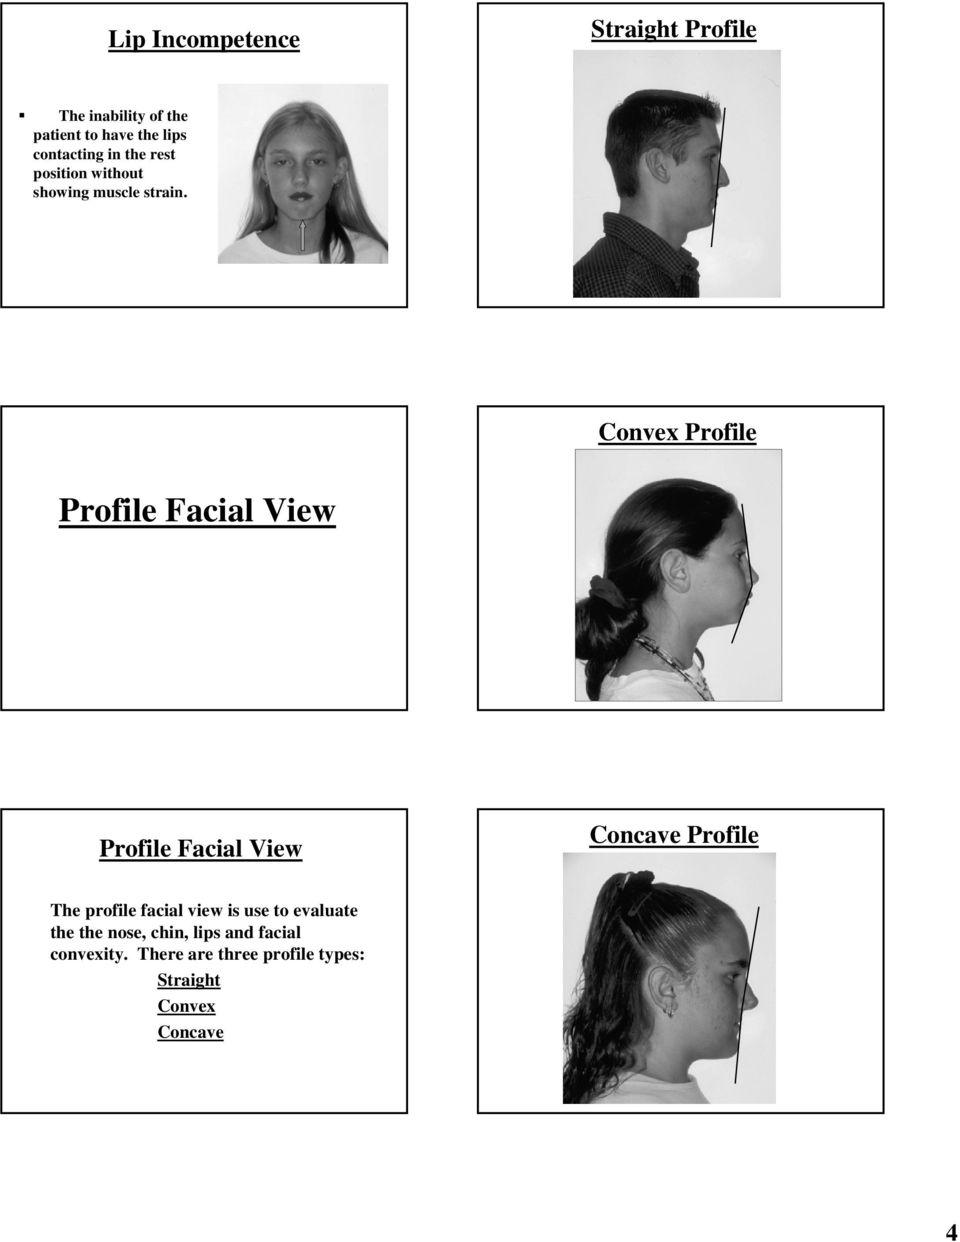 Convex Profile Profile Facial View Profile Facial View Concave Profile The profile facial